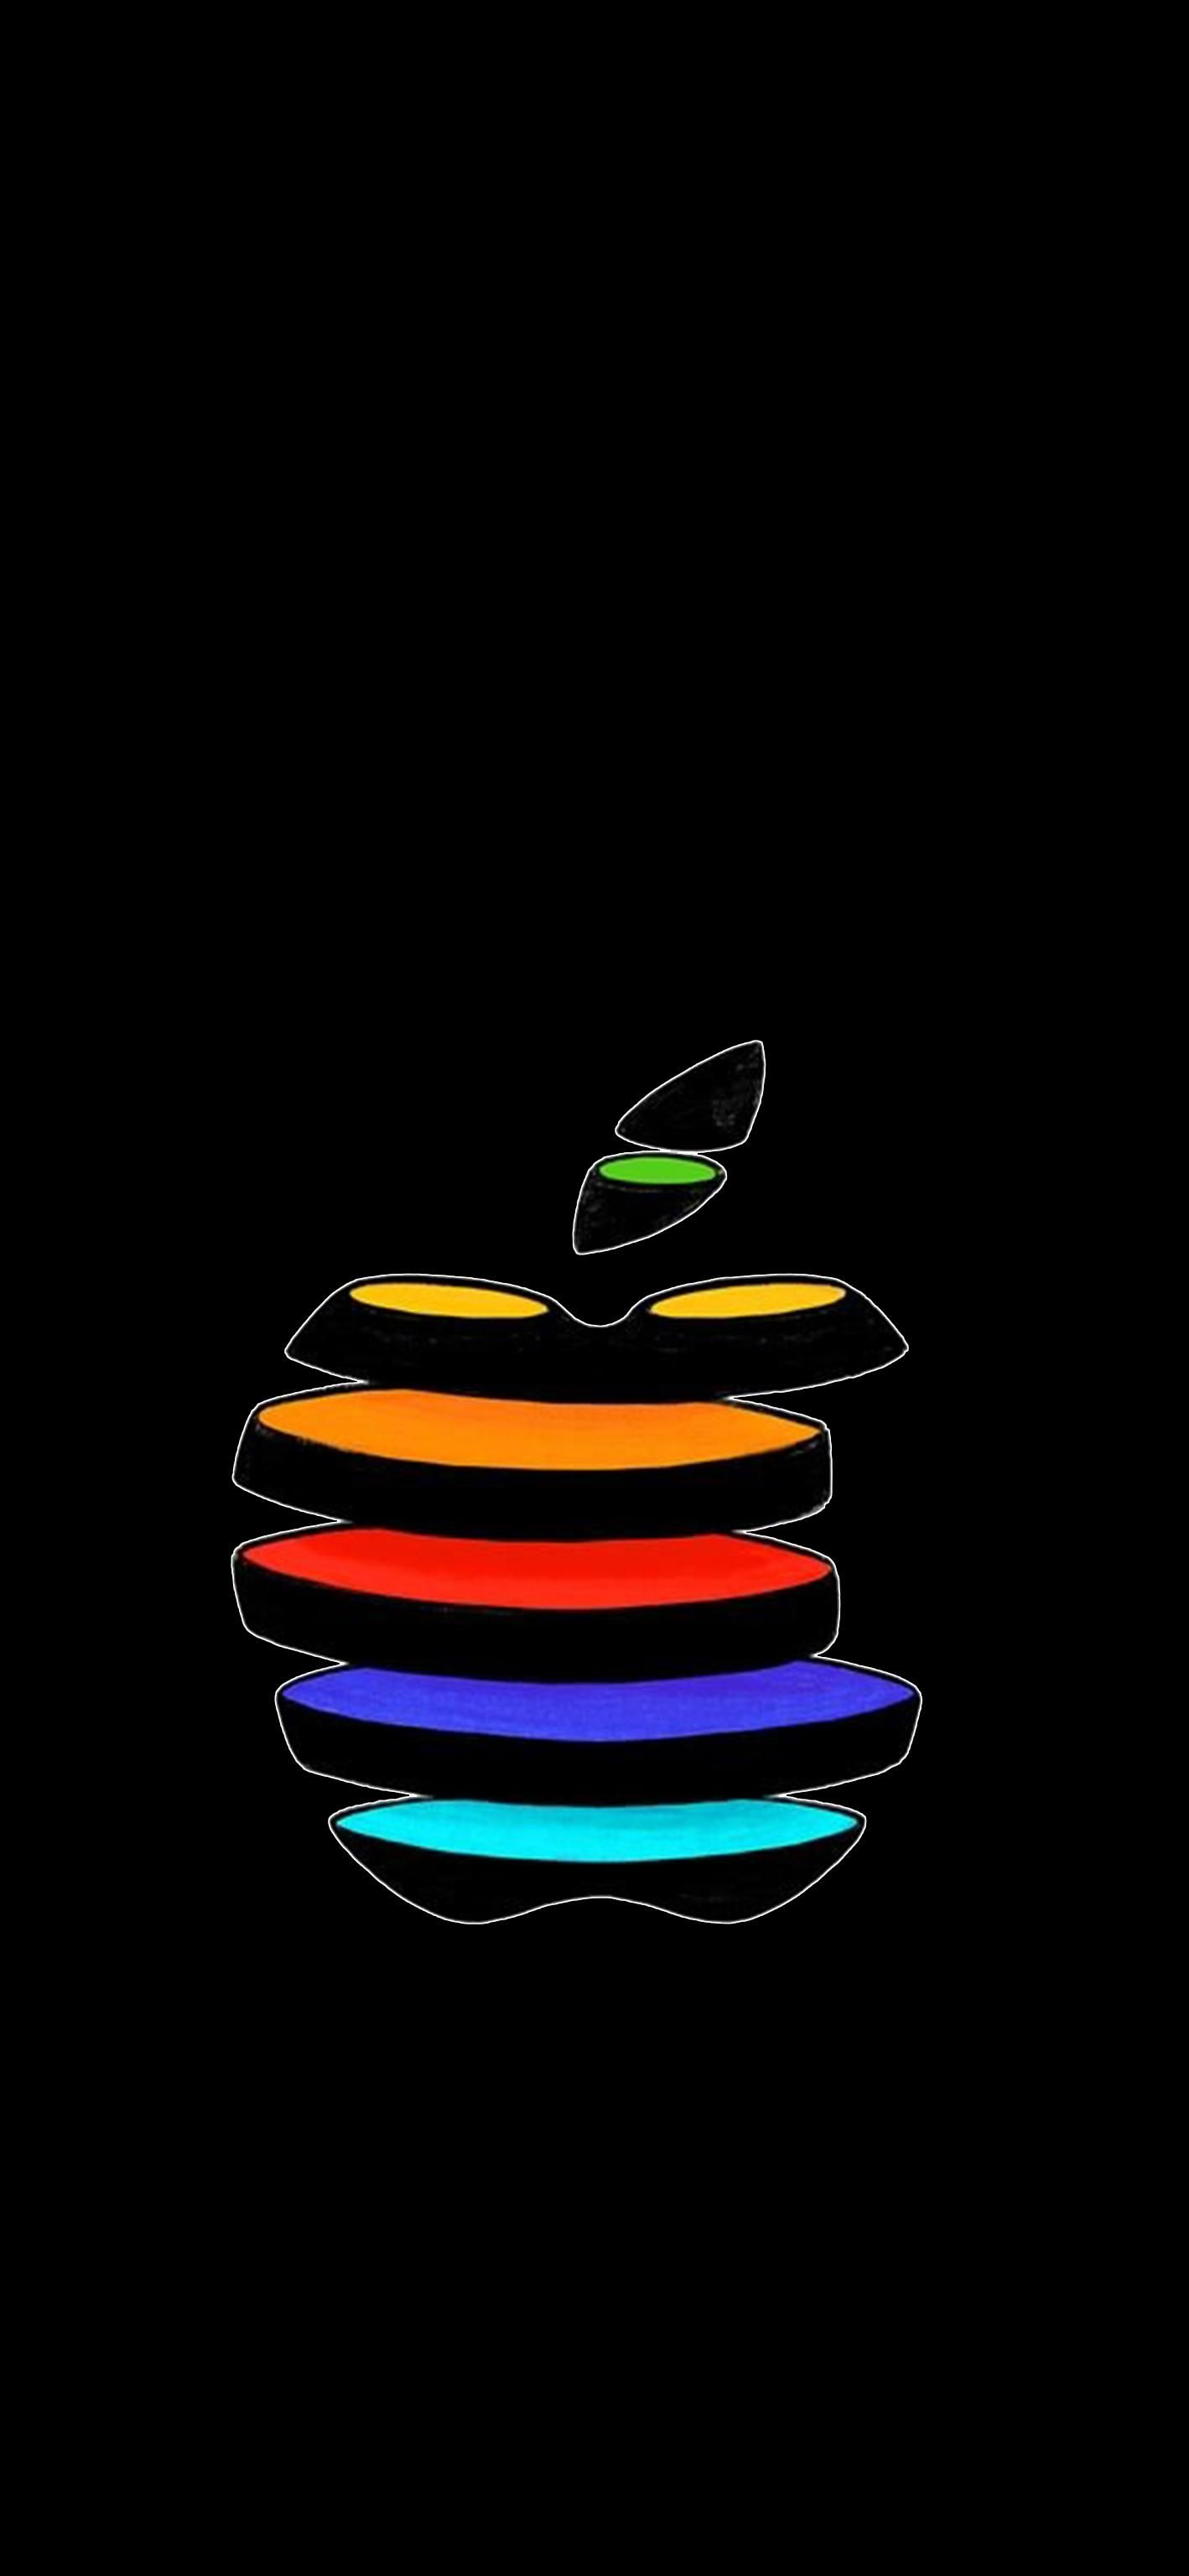 Apple Slices New Apple Event Apple logo wallpaper